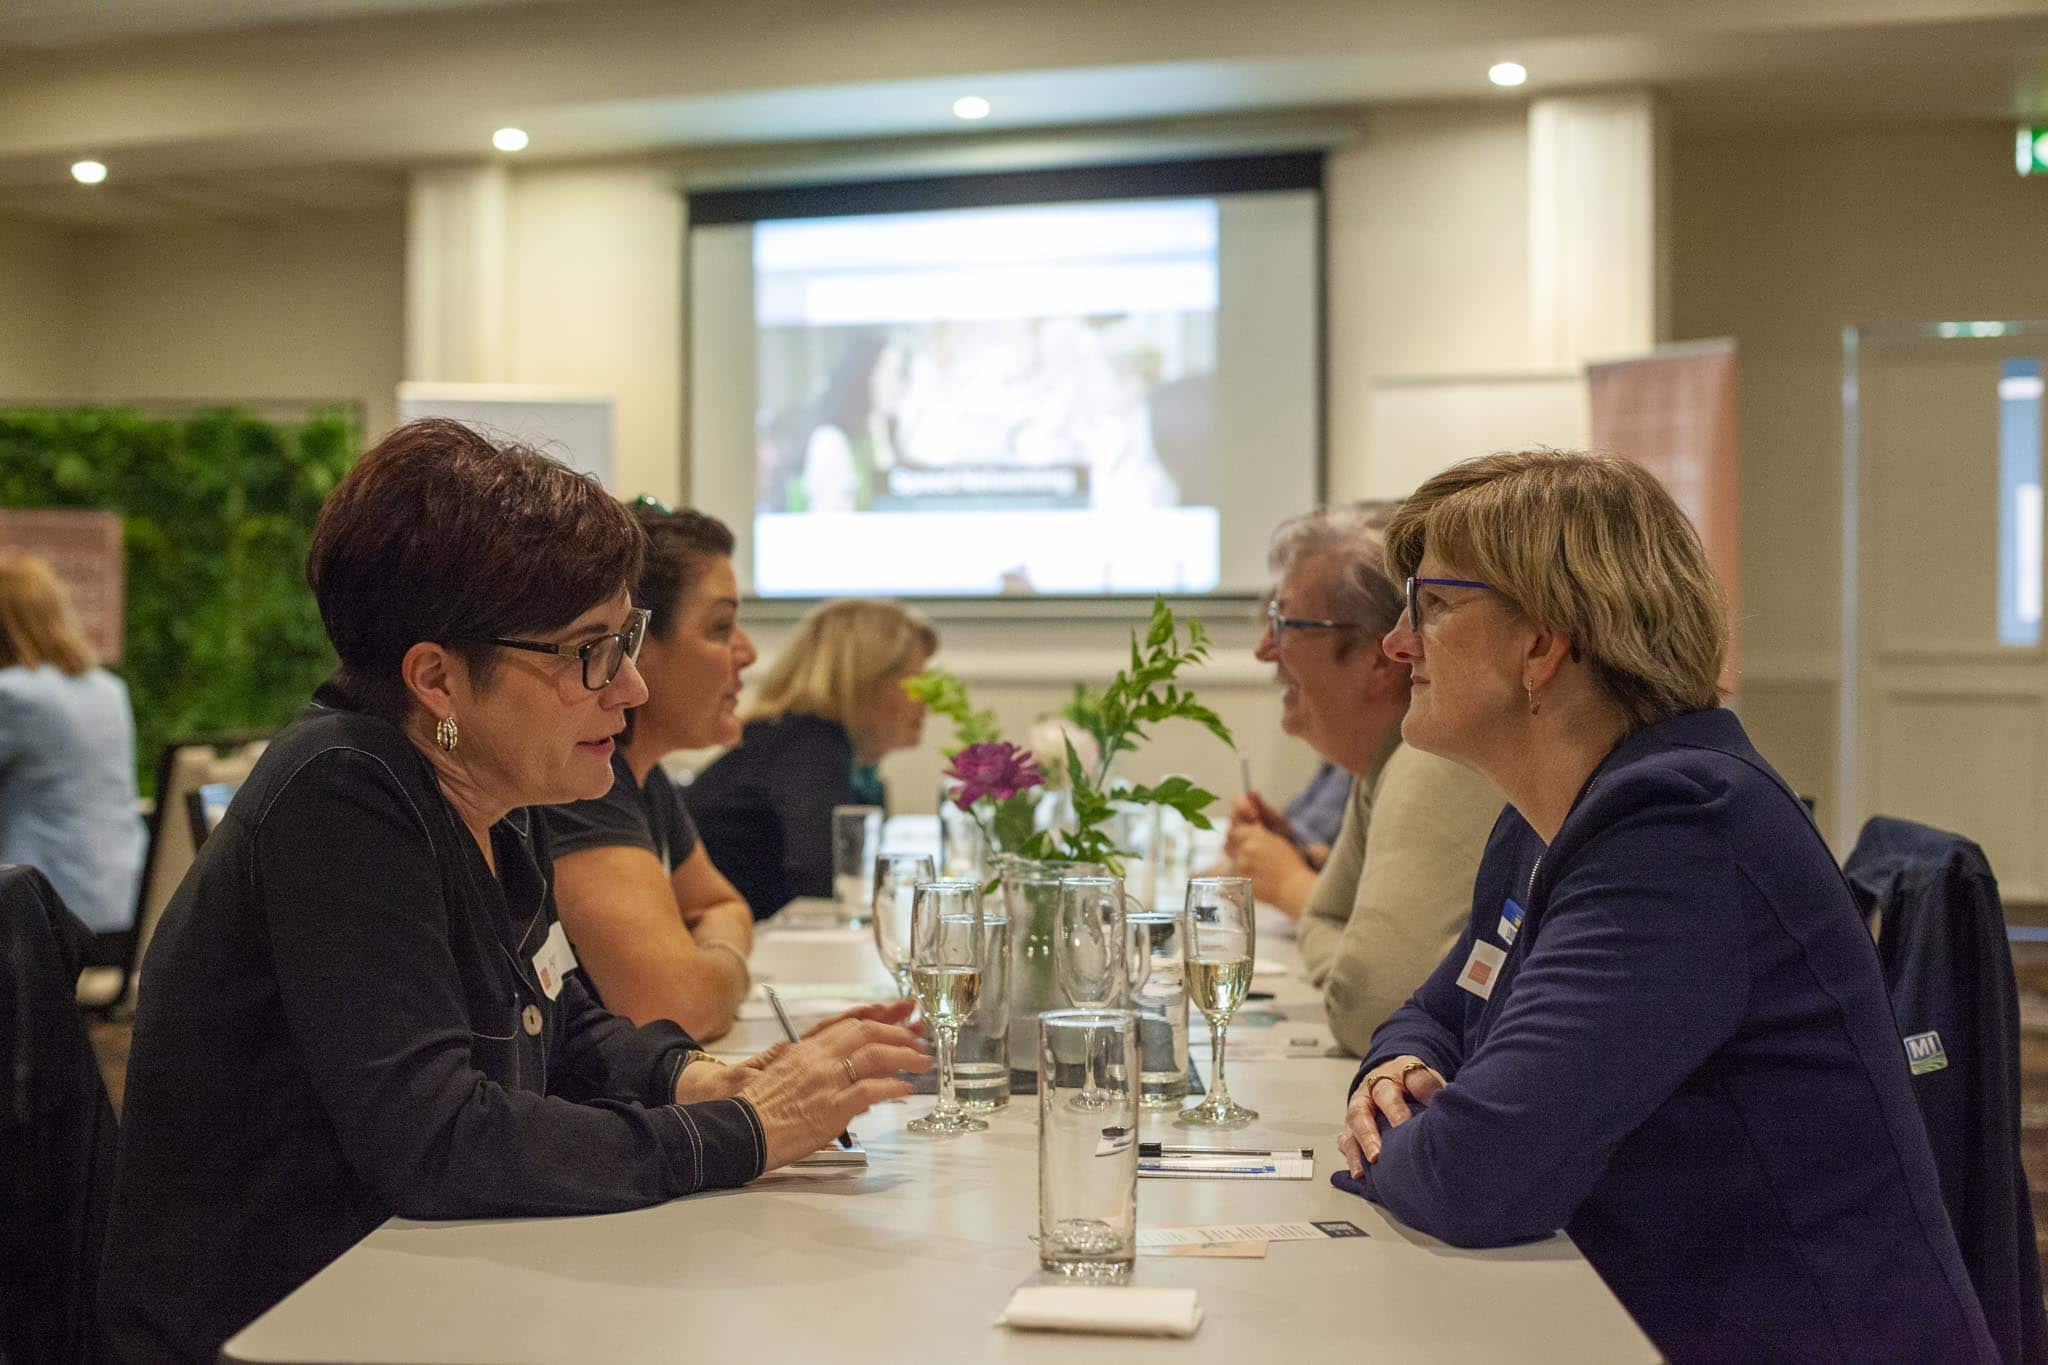 Speed Networking & New Program Launch - https://www.griffithwomeninbusiness.org/wp-content/uploads/2021/06/GWIB-Speed-Networking-2021-IMG_0914-2048px.jpg